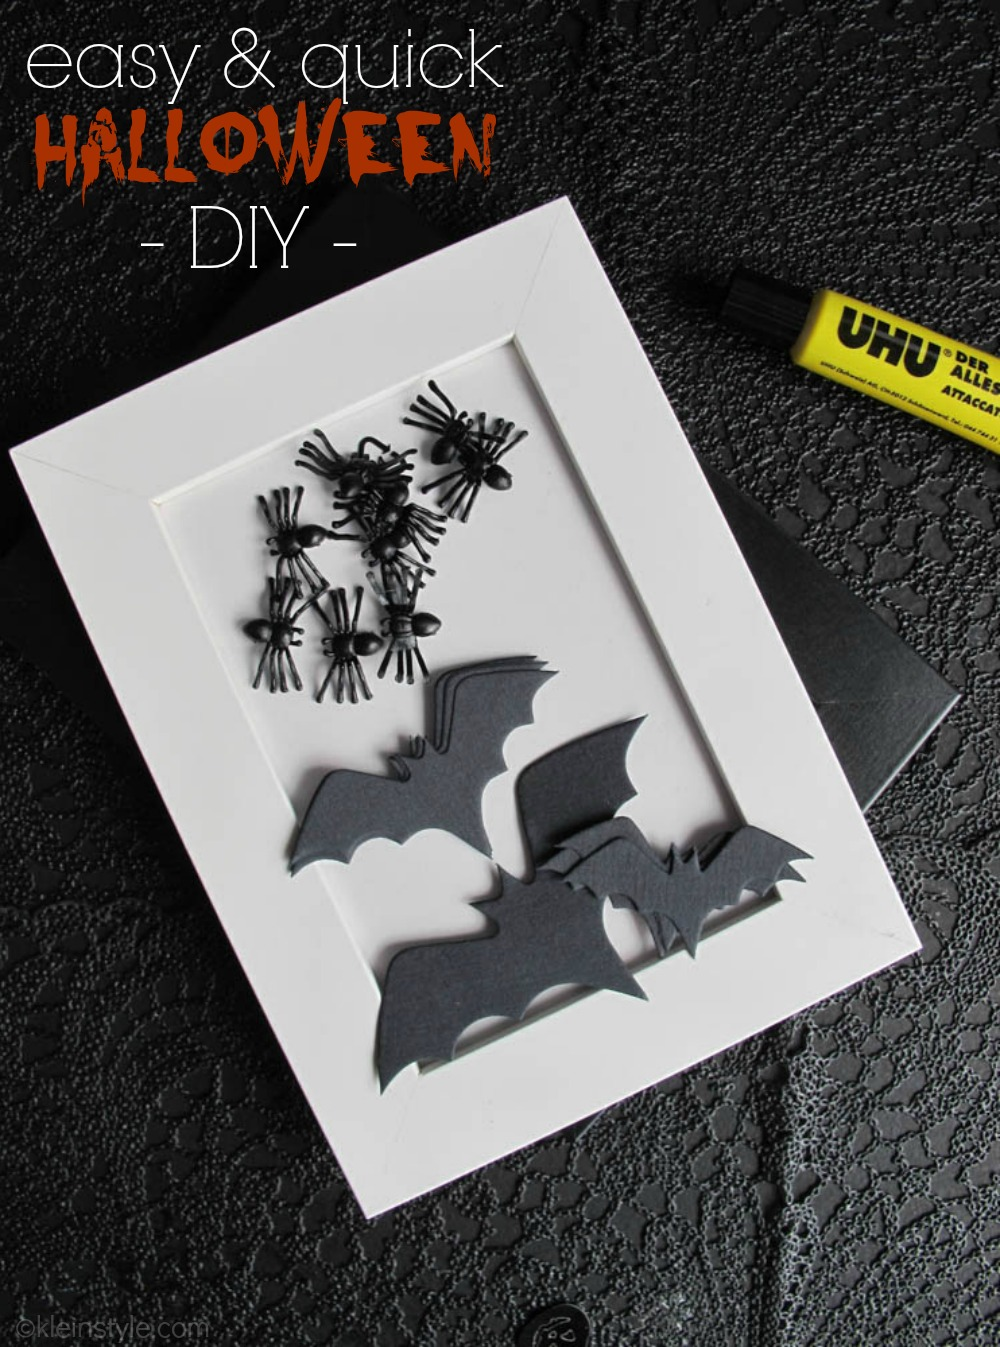 halloween diy ratz fatz deko kleinstyle. Black Bedroom Furniture Sets. Home Design Ideas